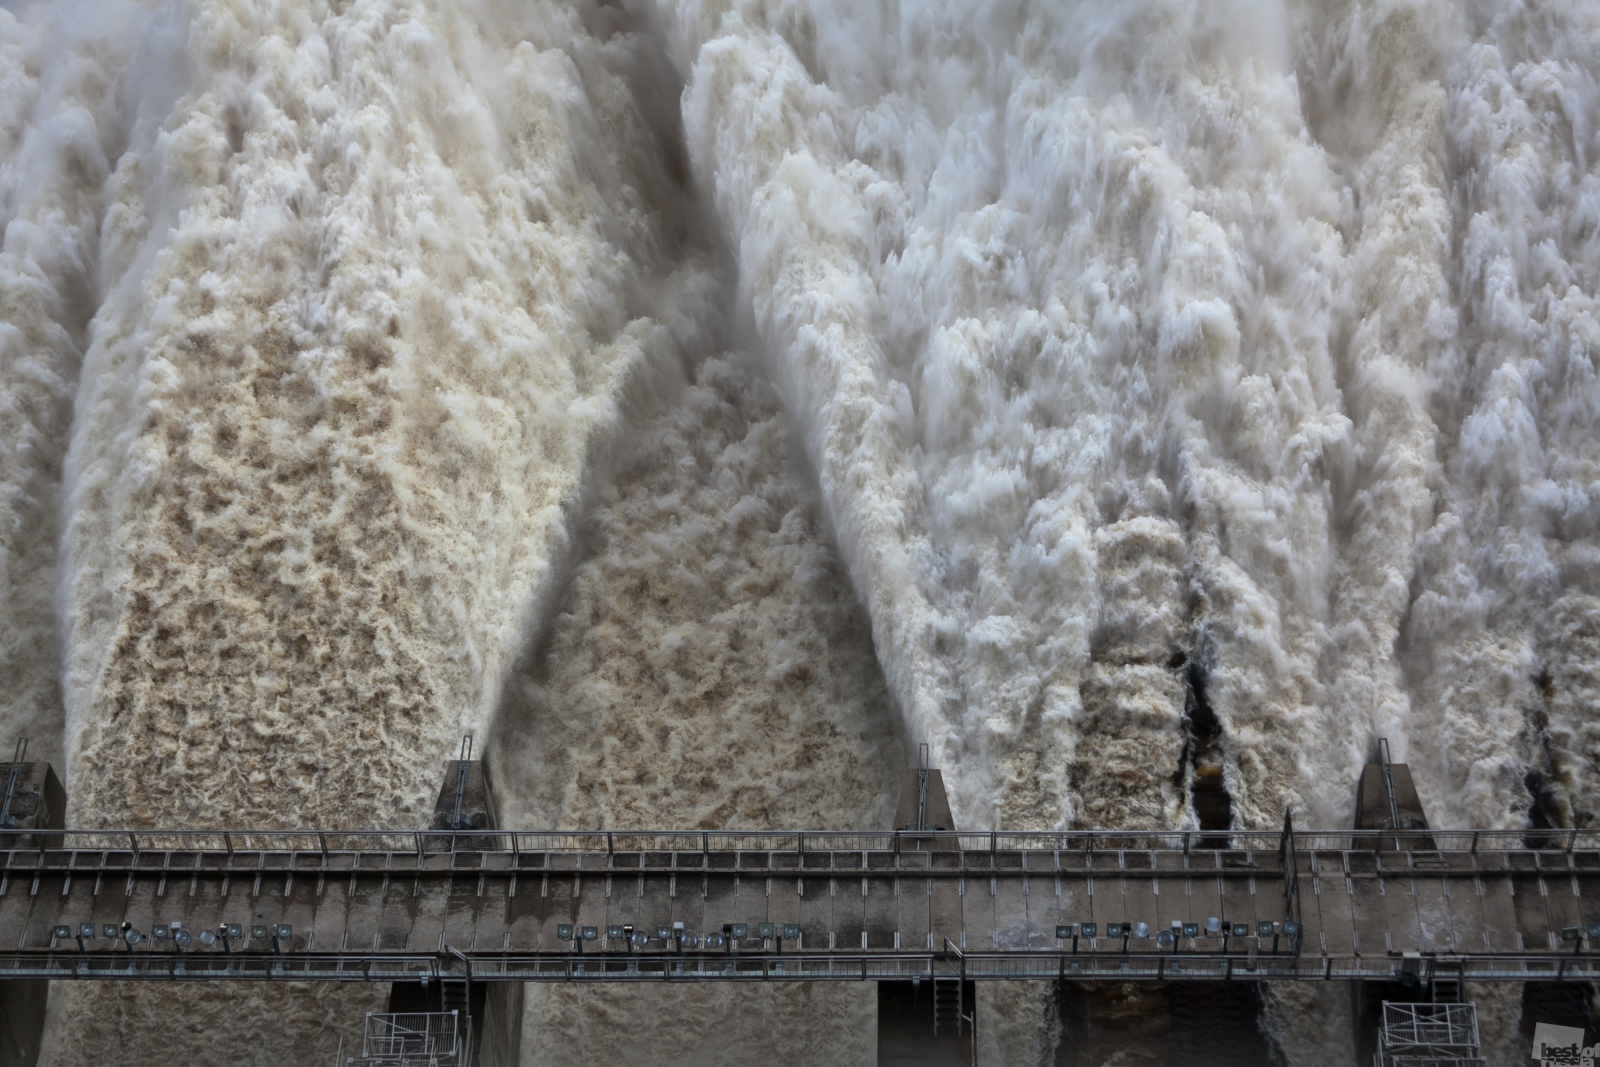 We continue to present you with the works from the finalists of Russia's largest photography contest, The Best of Russia 2013. Today's selection is from the 'Nature' category. // Releasing water at the Zeiskaya hydroelectric power plant during flooding in the Amur region.